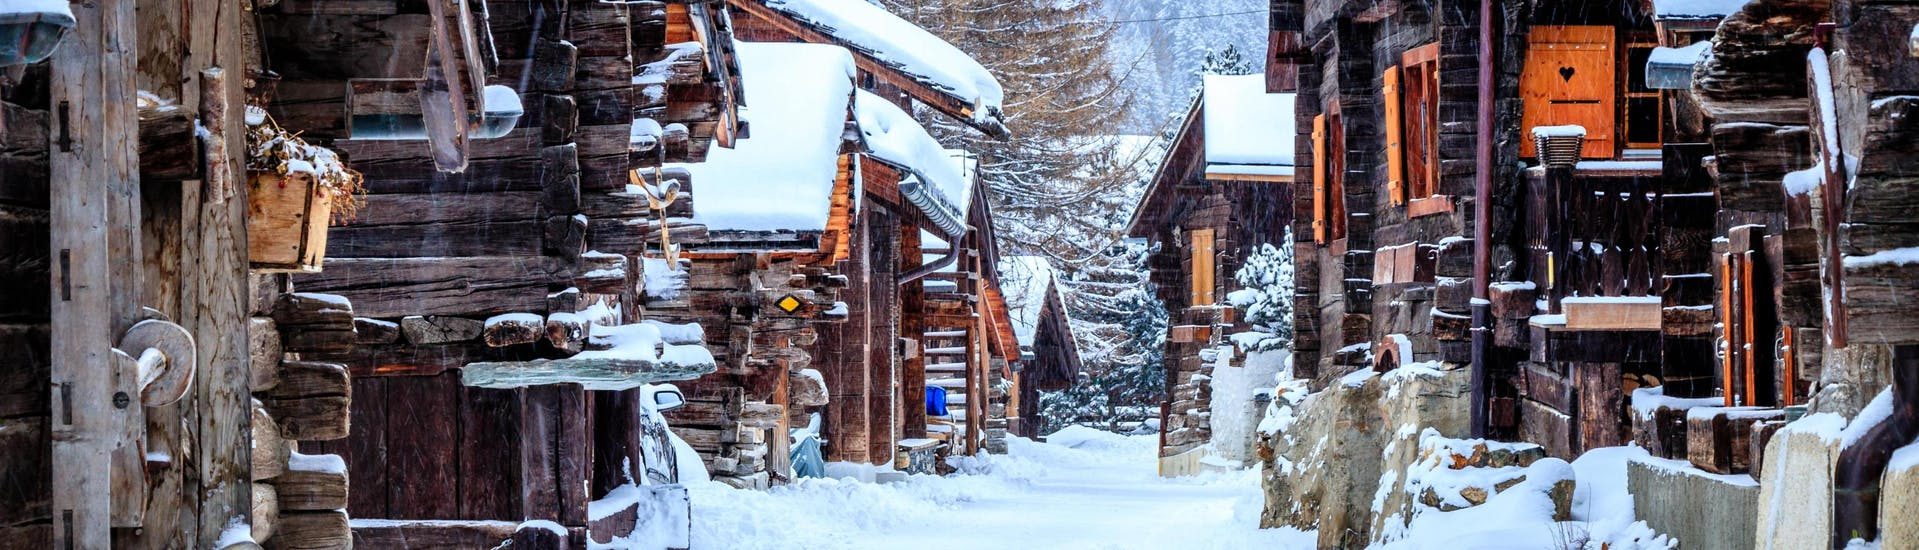 An image of the wooden chalets in the small Swiss ski resort of Grimnetz-Zinal, a popular destination for skiers who want to book ski lessons with one of the local ski schools.